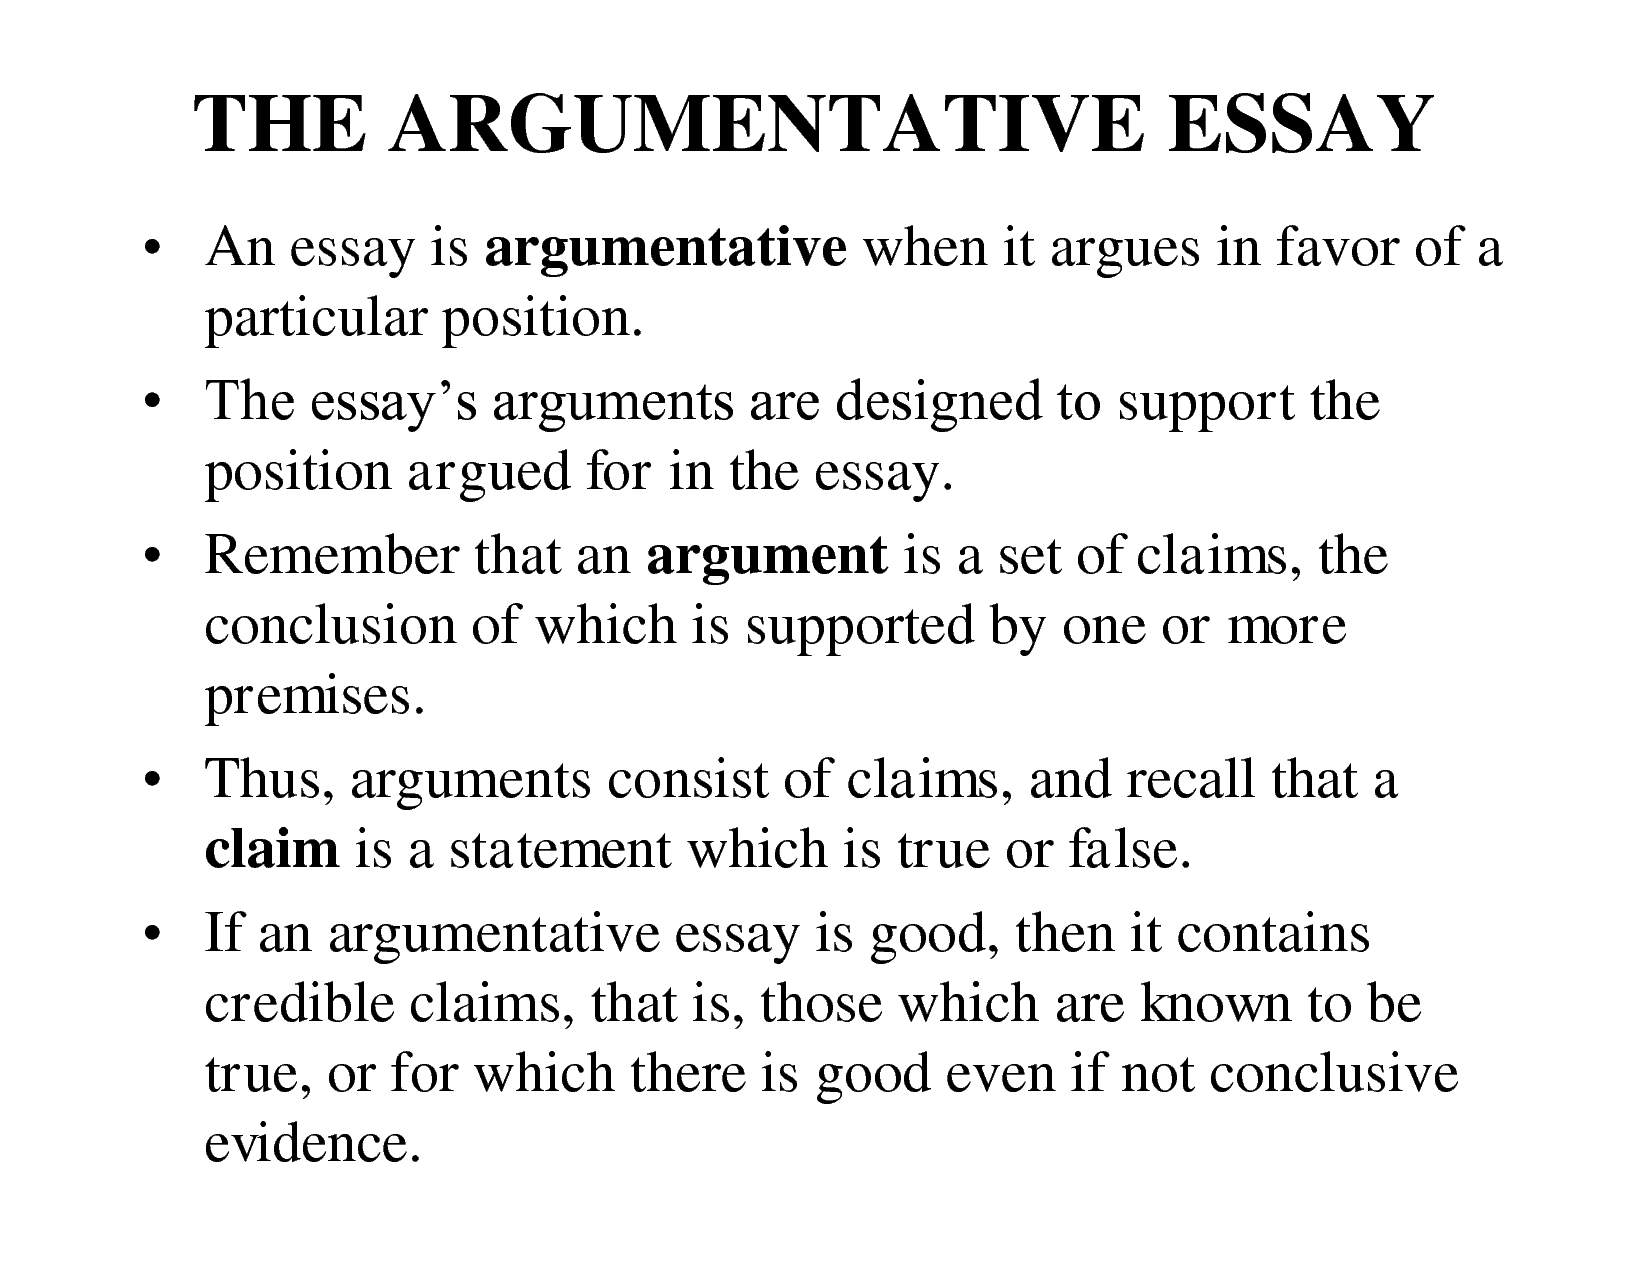 008 Jkmh24aso9 How To Begin An Argumentative Essay Stirring Write Ap Lang Step By Pdf Full